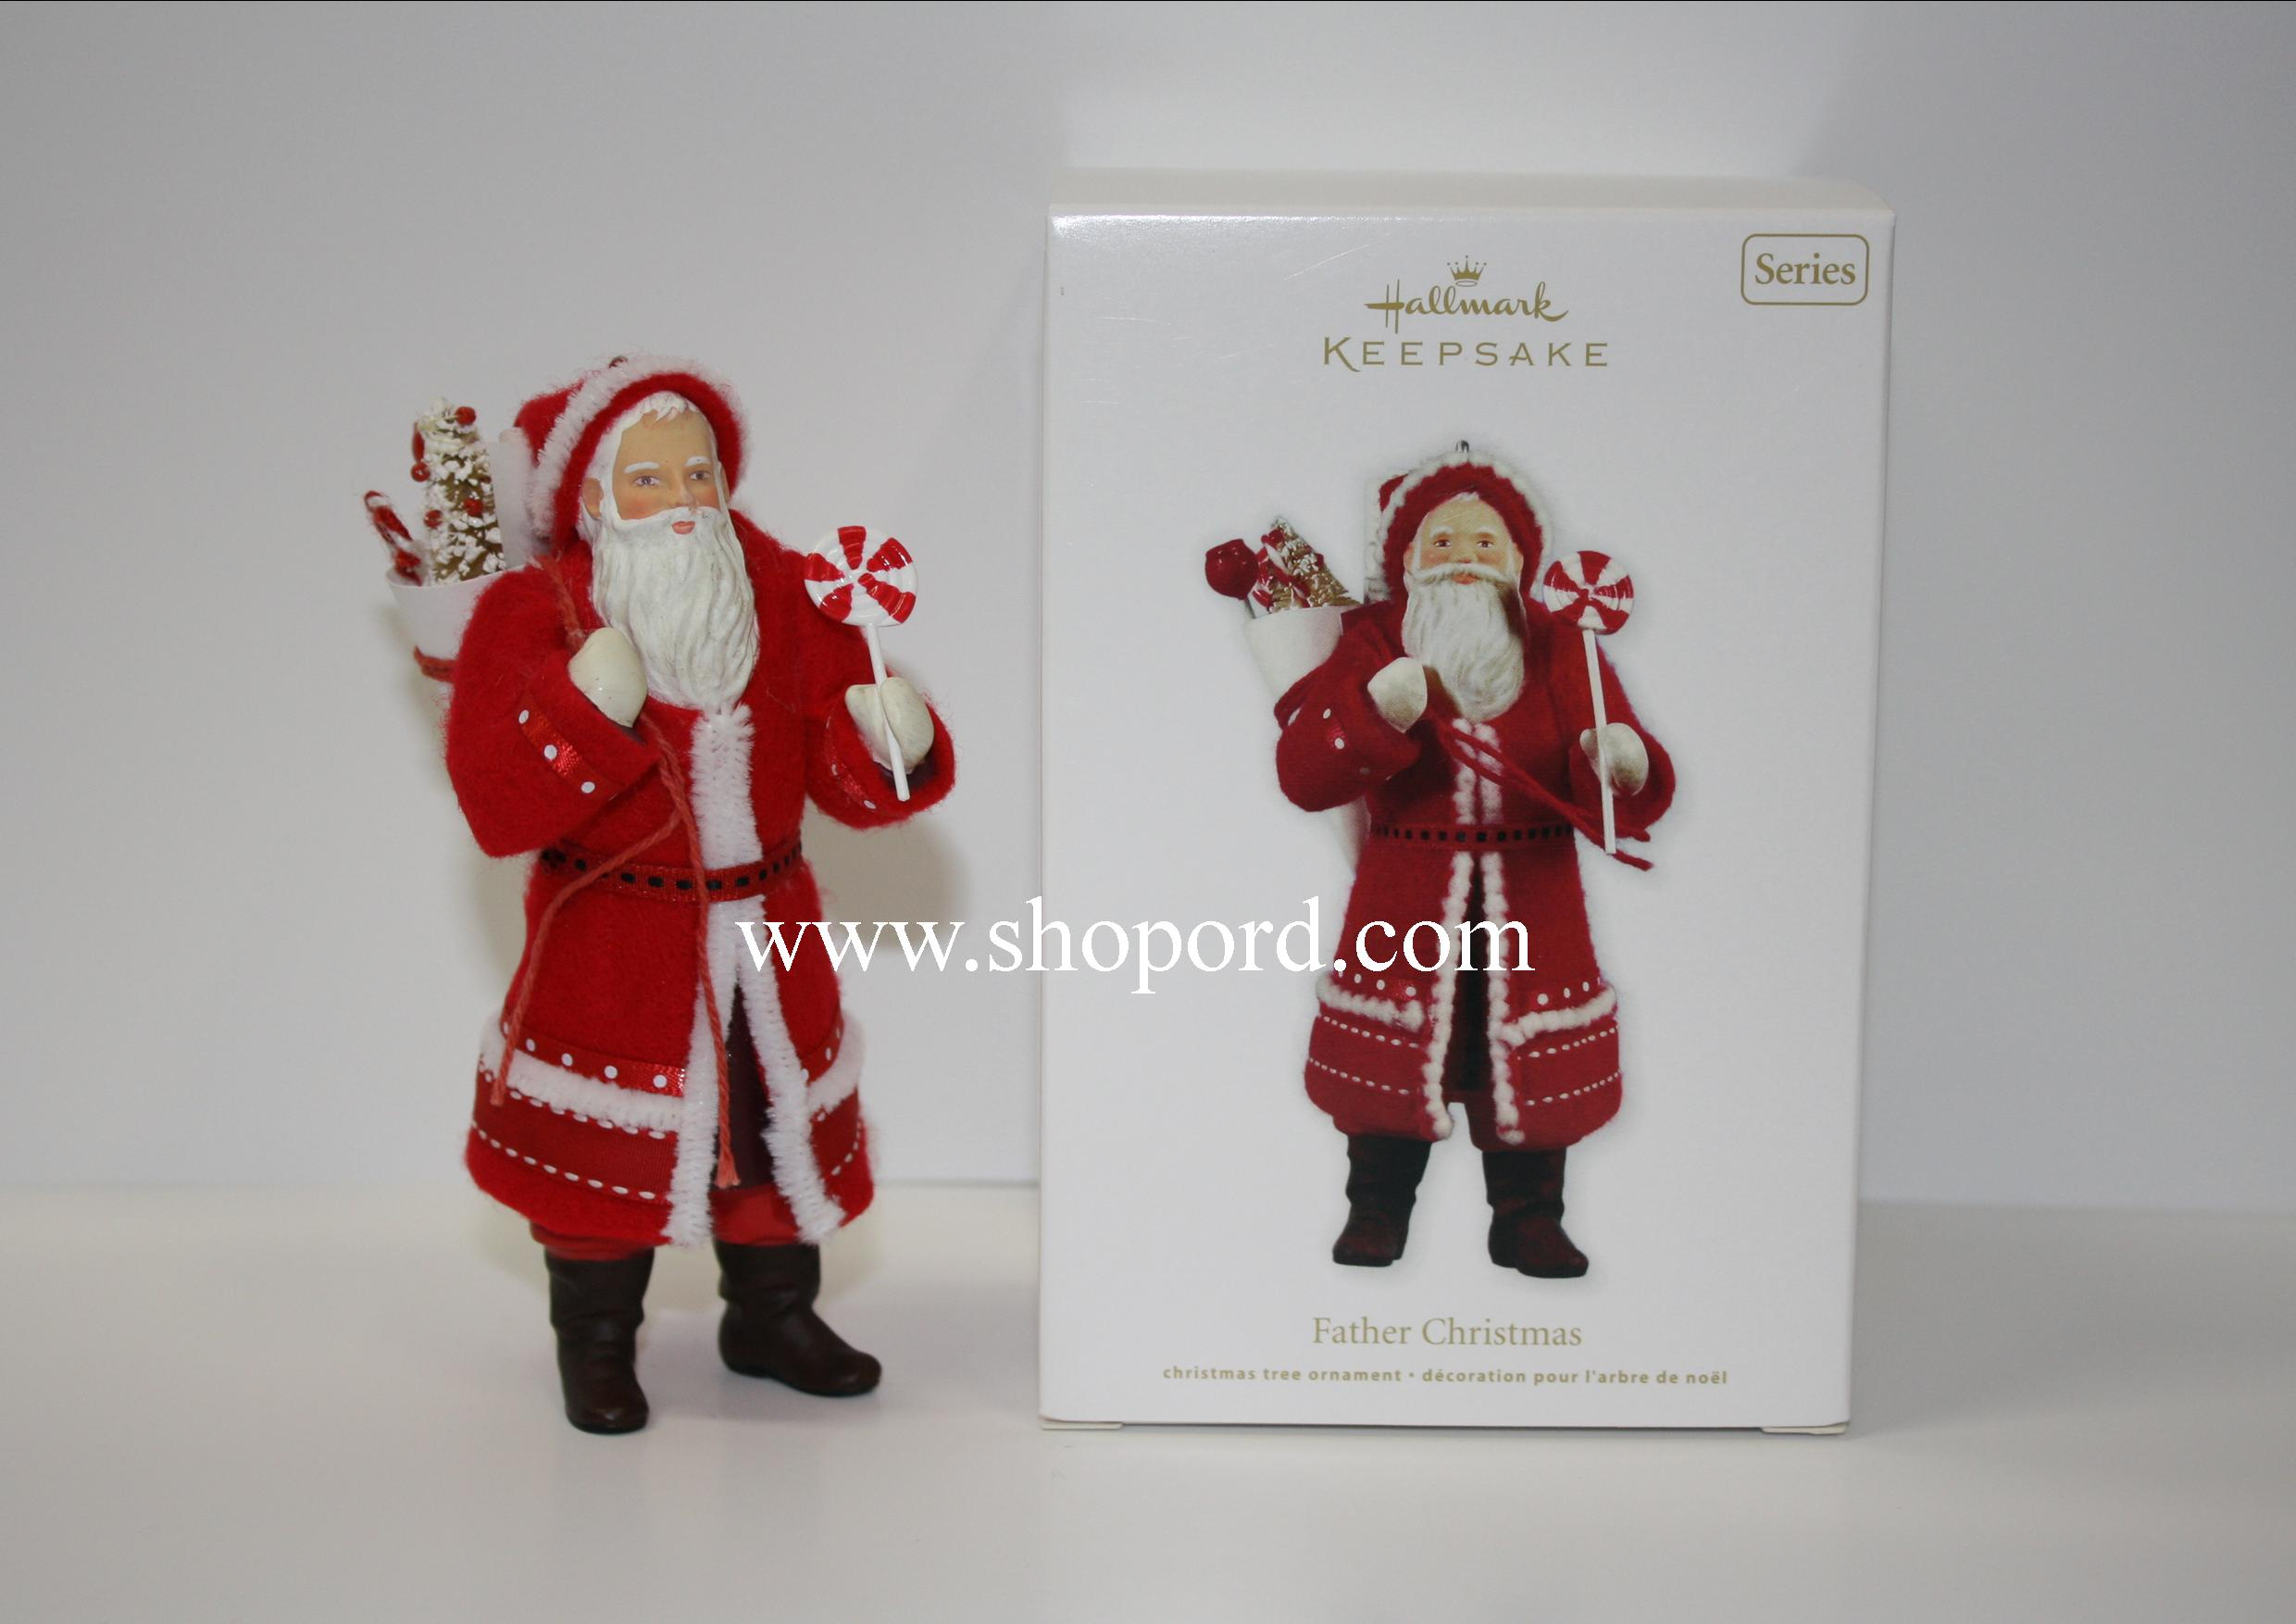 Hallmark 2011 Father Christmas Ornament 8th in the Father Christmas series QX8769